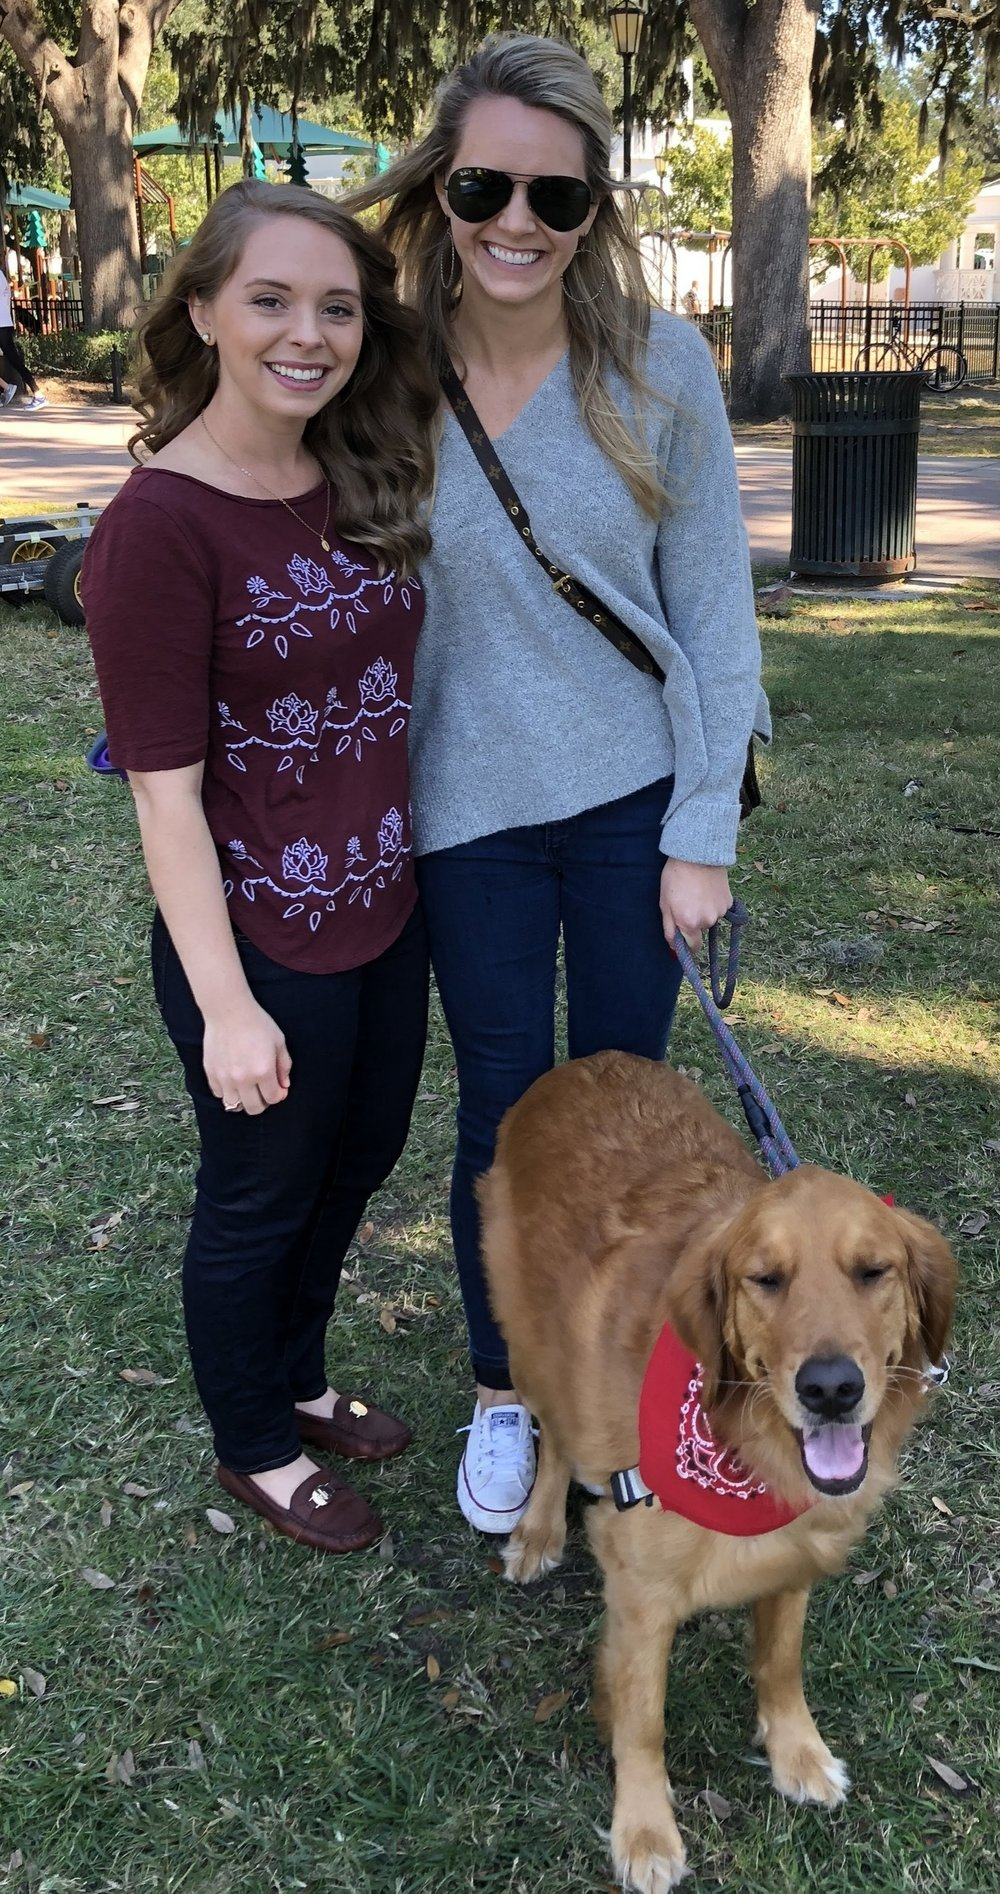 Kaitlyn (left) and her client, Kate (right), took advantage of the sunny day to meet in person for the first time. Kate even brought along her furry sidekick, Sugar!